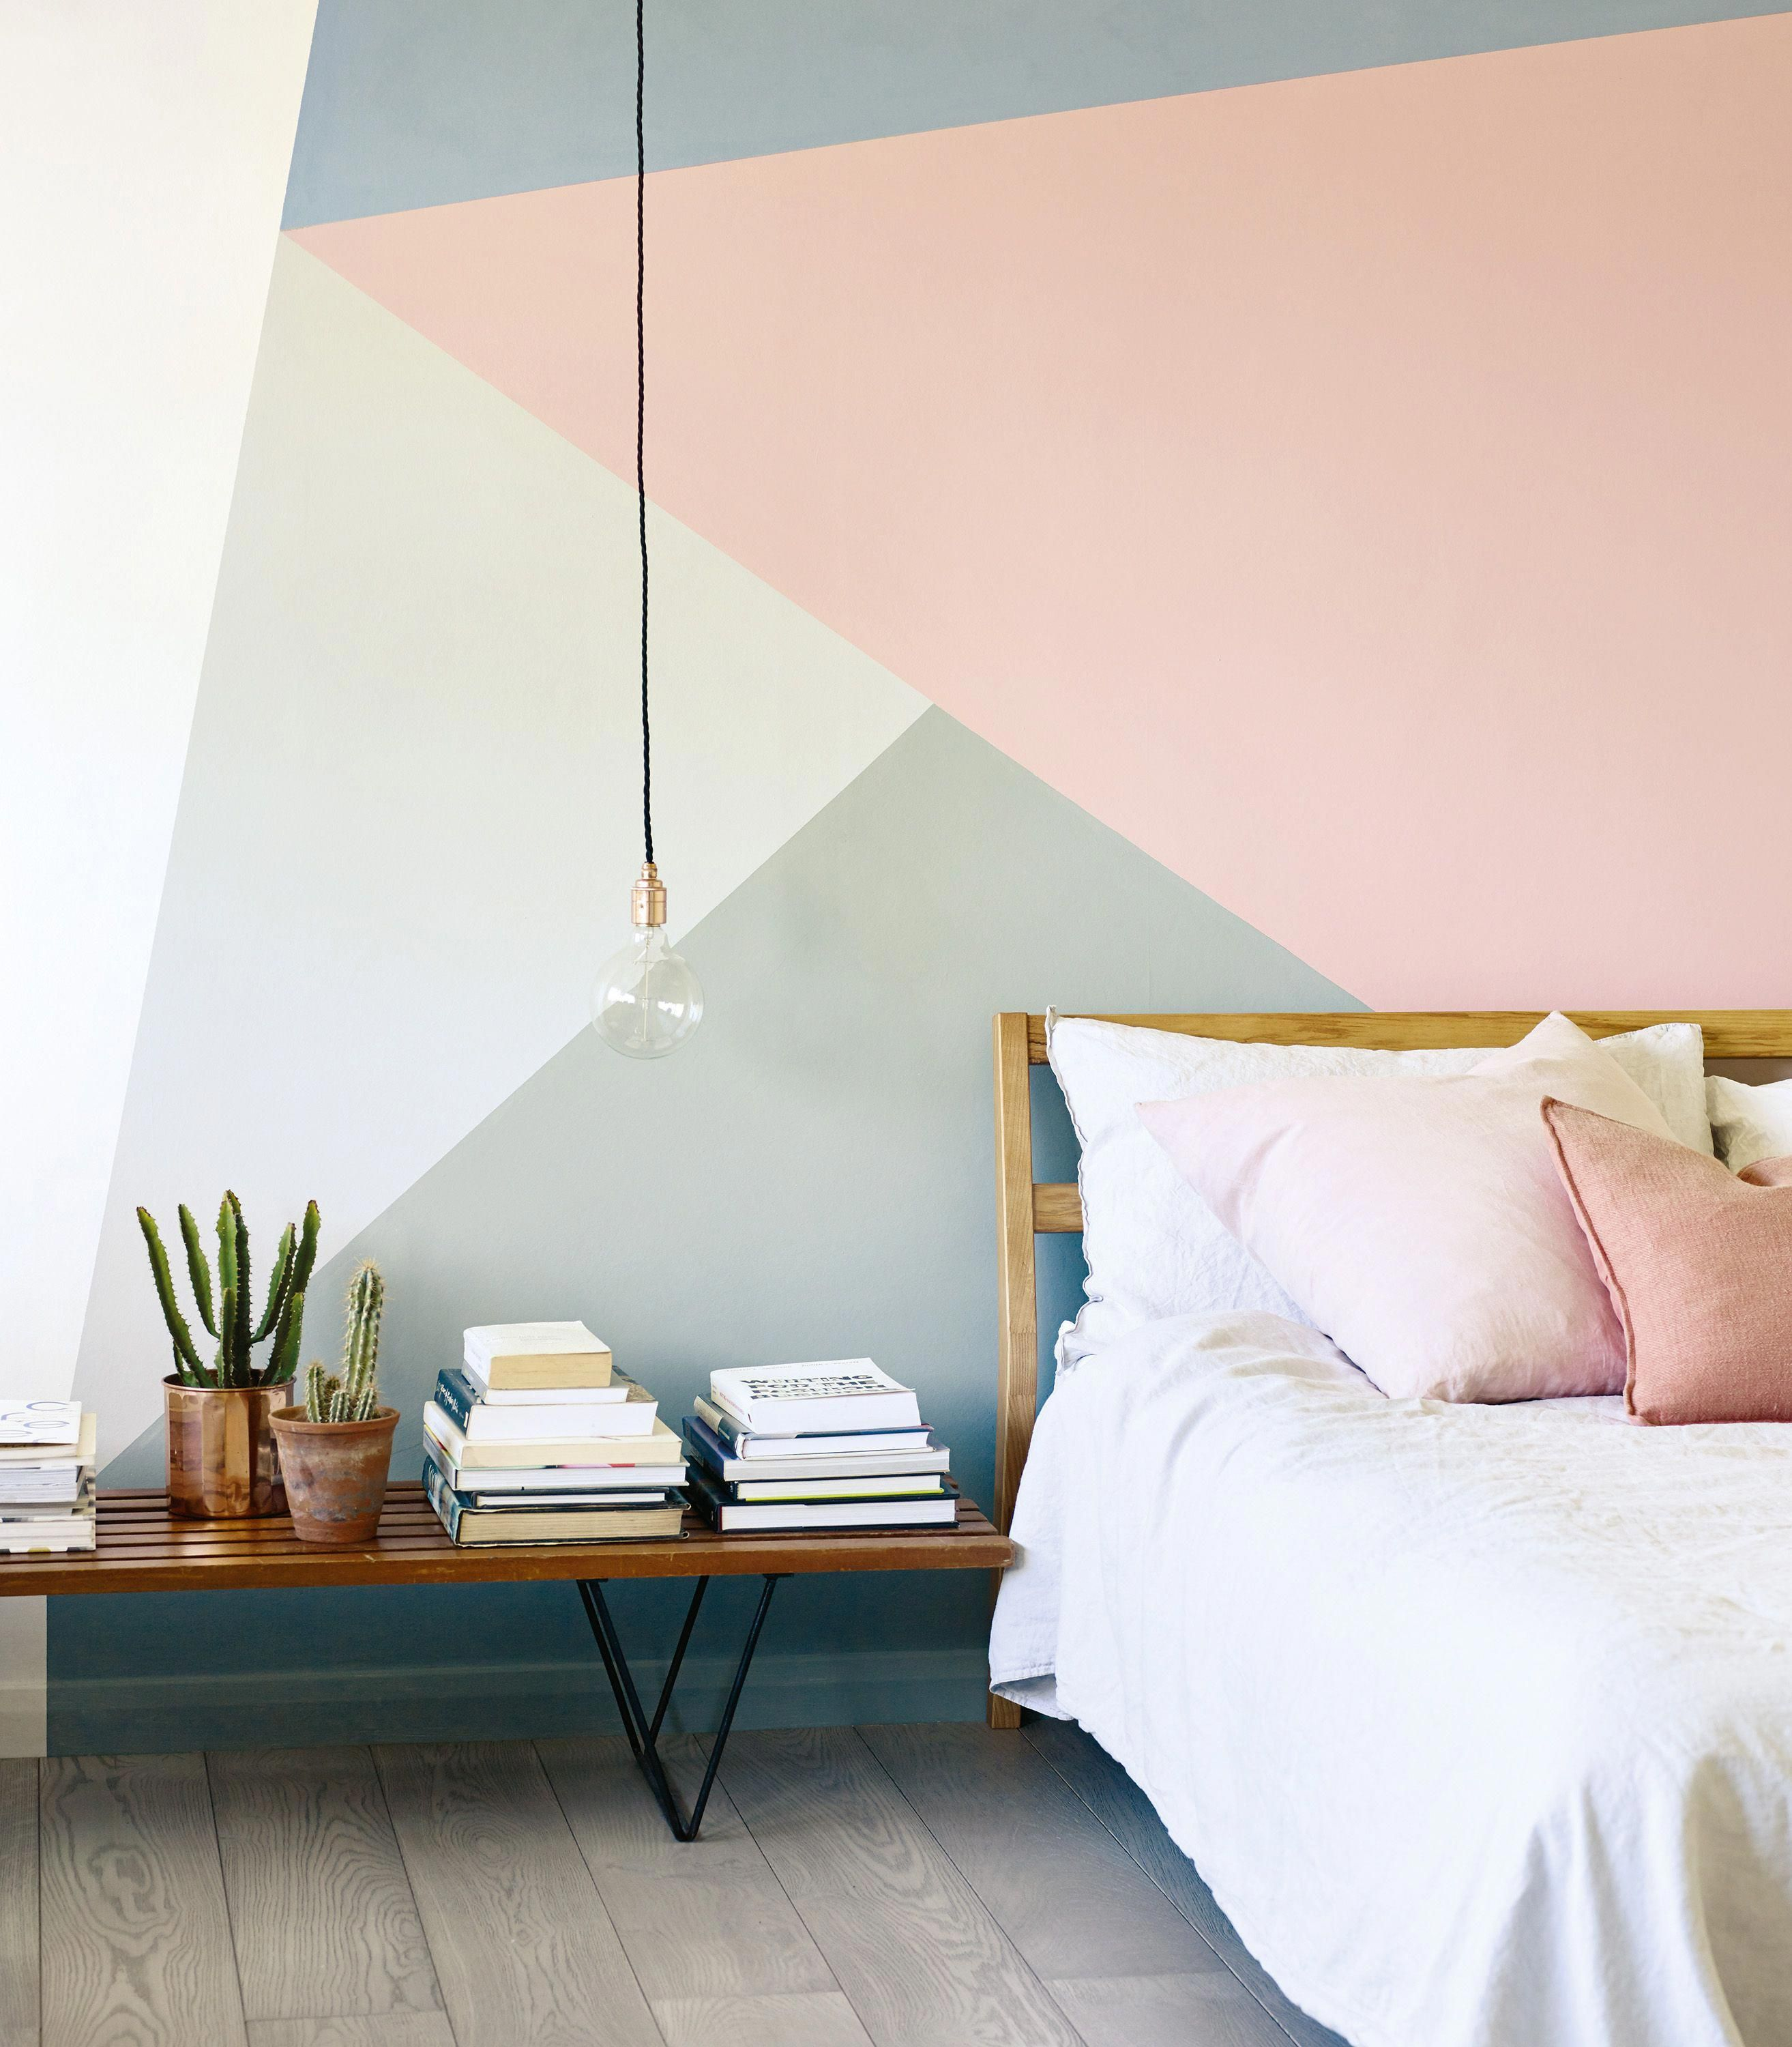 Awesome Home Decor Diy Information Are Available On Our Site Take A Look And You Wont Be Sorry In 2020 Beautiful Bedroom Colors Bedroom Wall Paint Wall Decor Bedroom